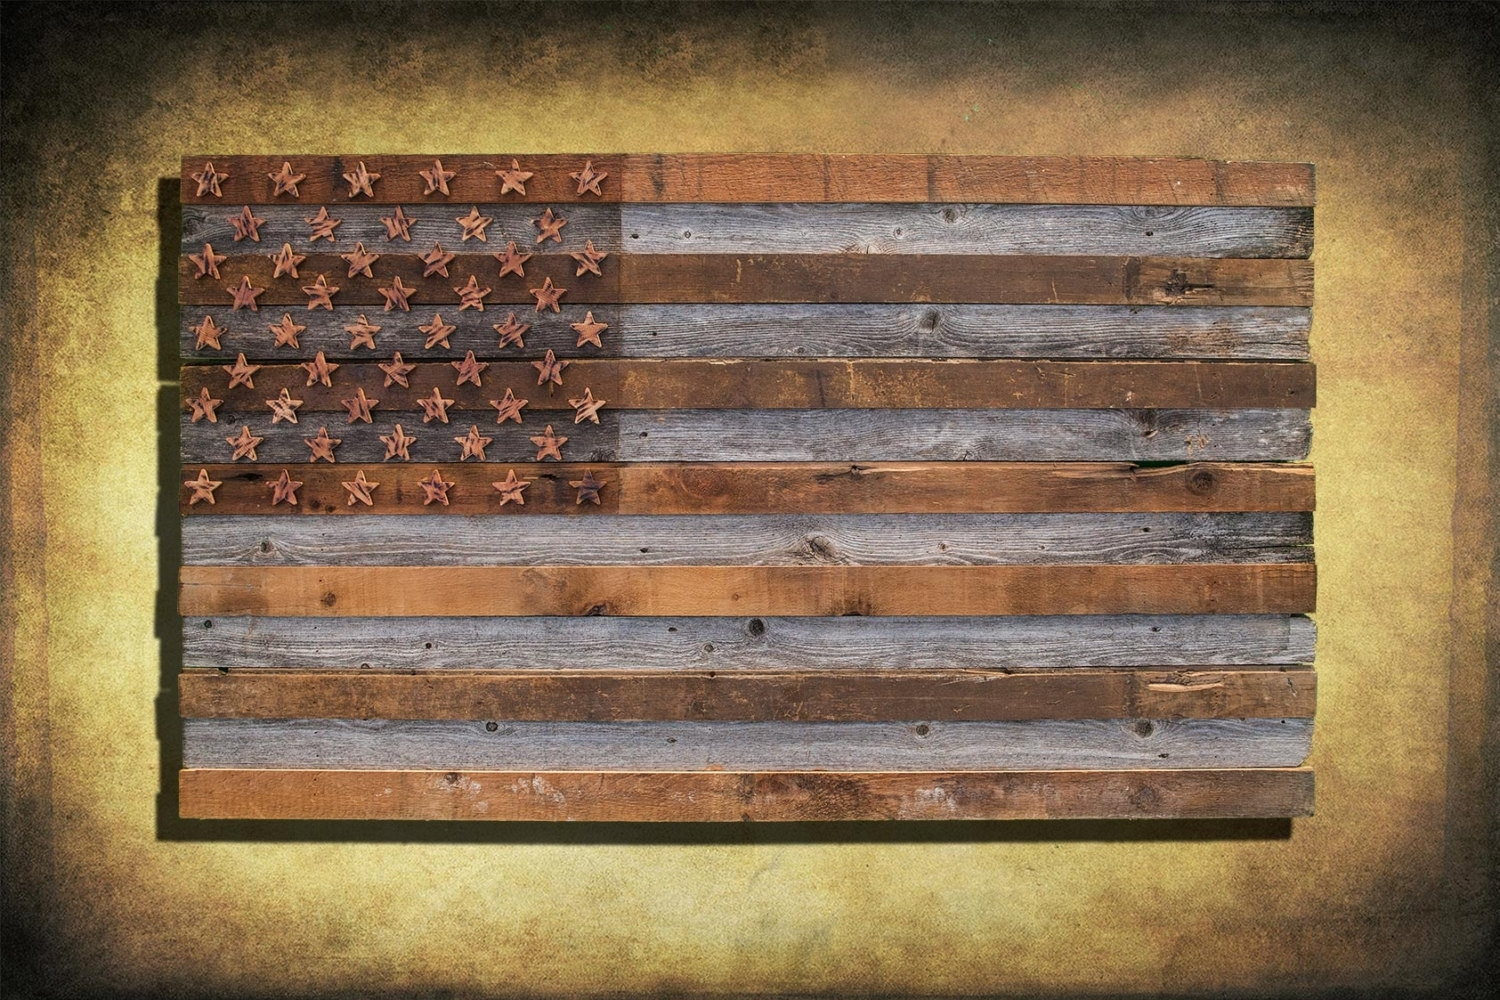 Barnwood American Flag, 100 Year Old Wood, One Of A Kind, 3D, Wooden Intended For Latest Vintage American Flag Wall Art (View 6 of 20)